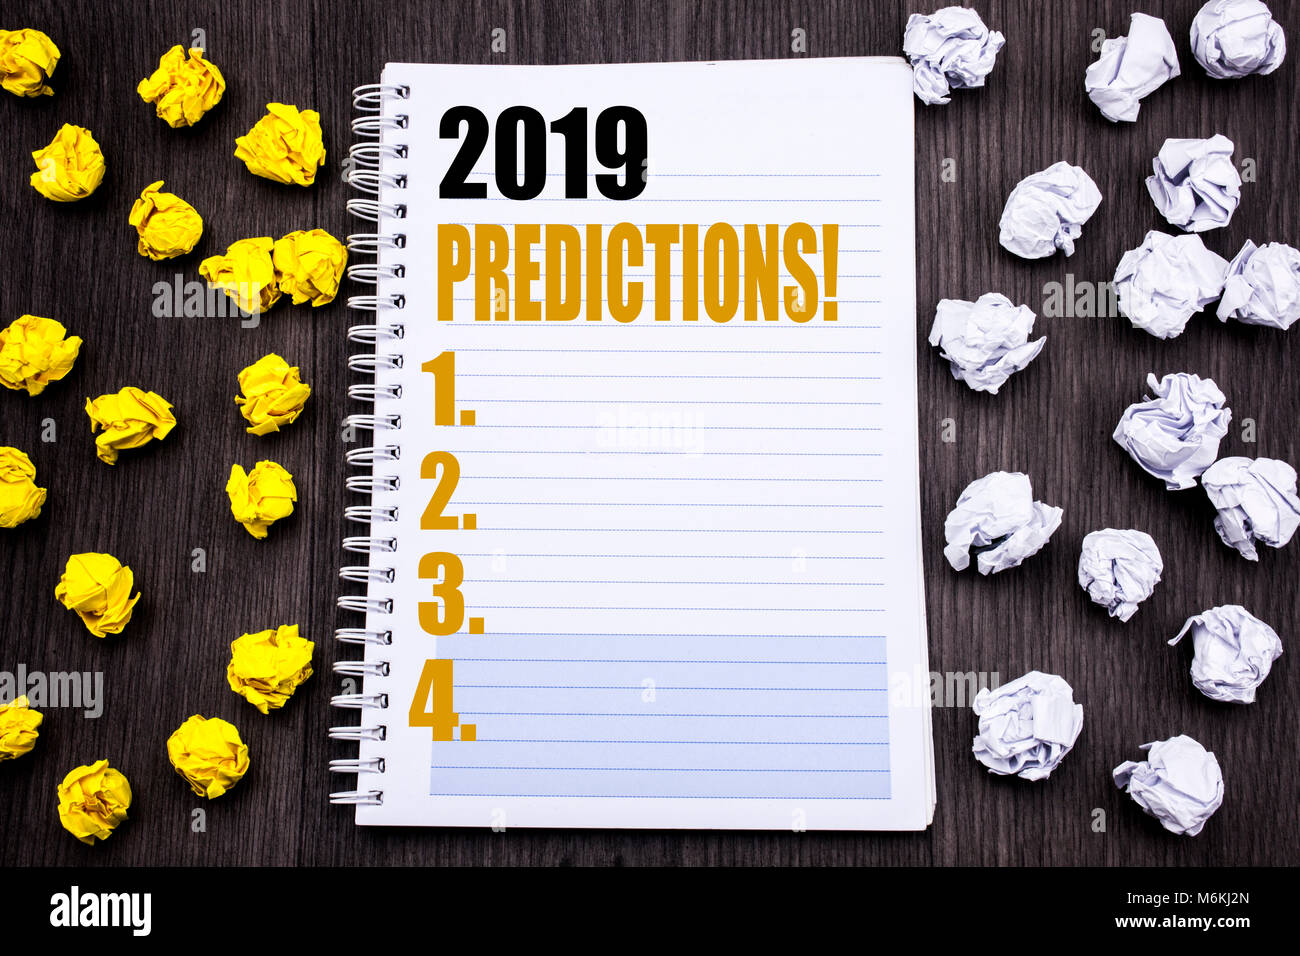 Conceptual hand writing text caption showing 2019 Predictions. Business concept for Forecast Predictive Written Stock Photo